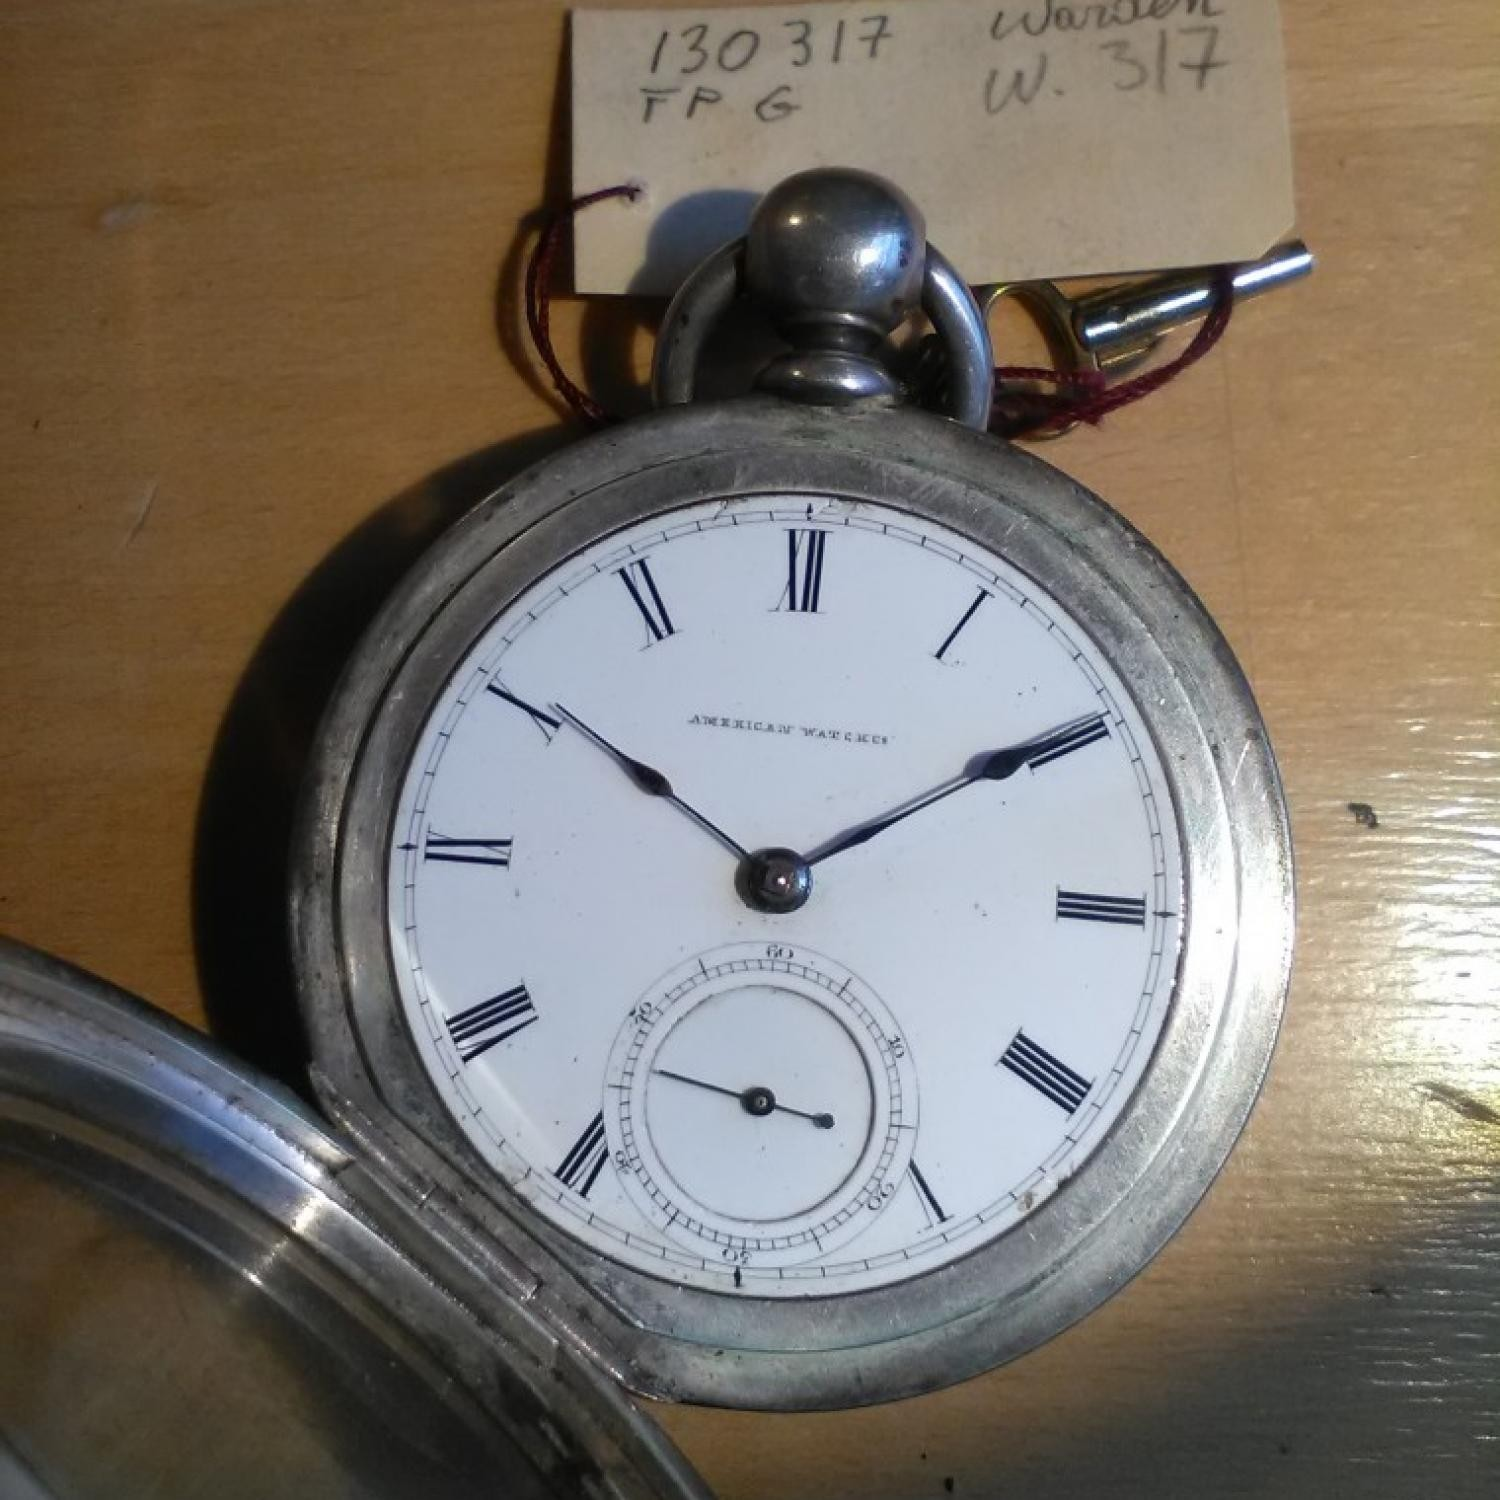 Image of Waltham P.S. Bartlett #430317 Dial